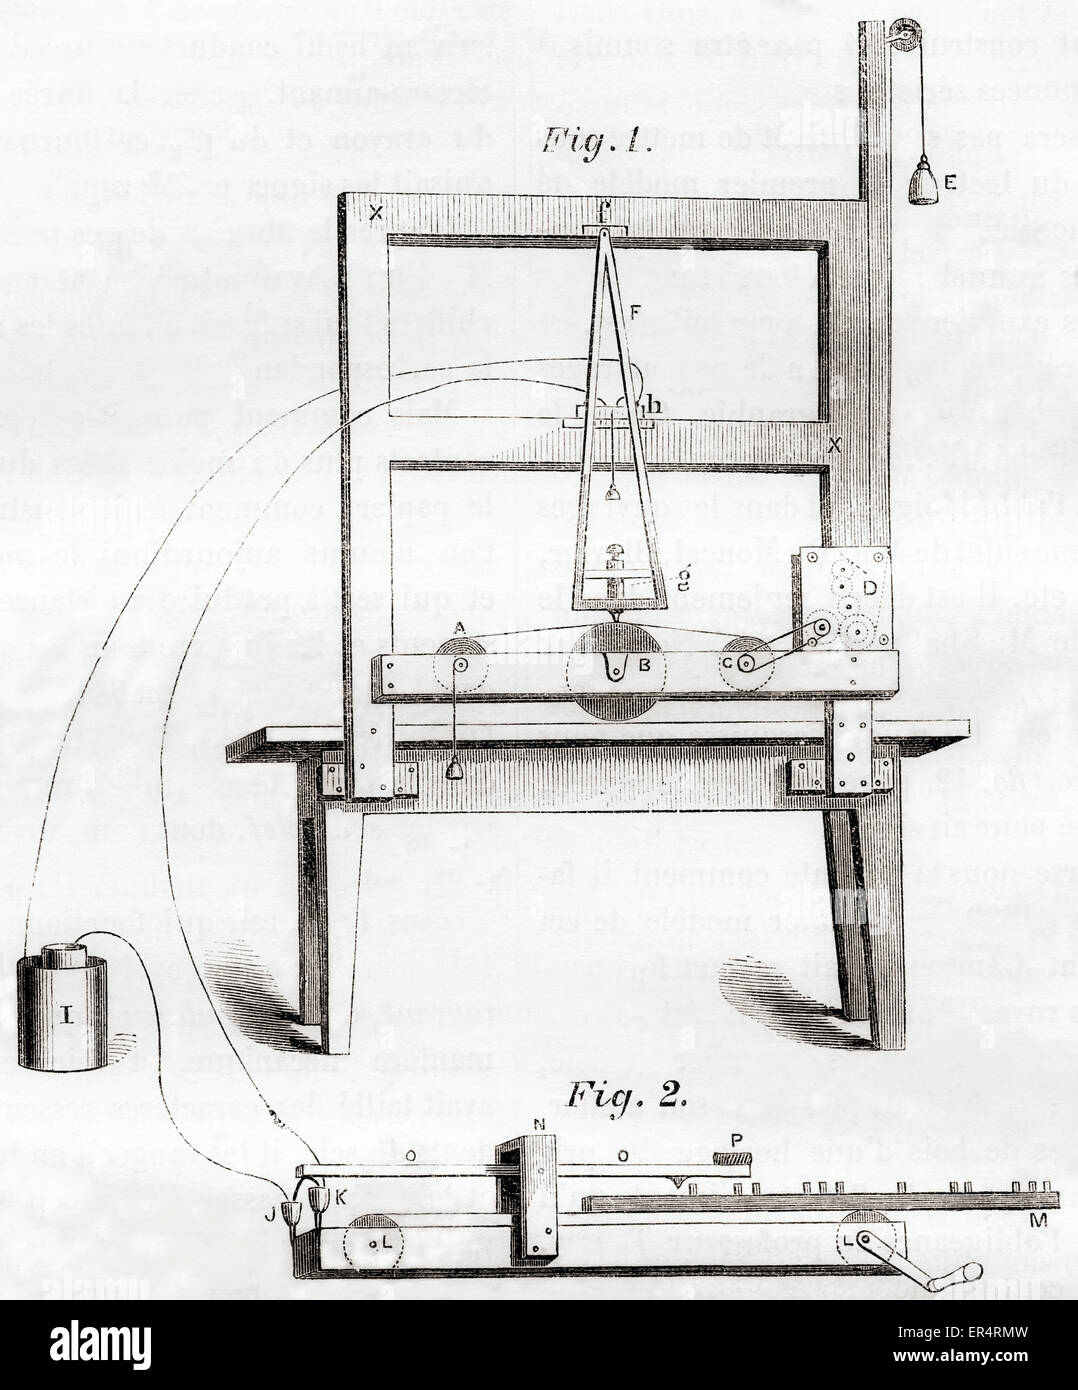 The first electrical telegraph invented by Samuel Morse in 1837 ...